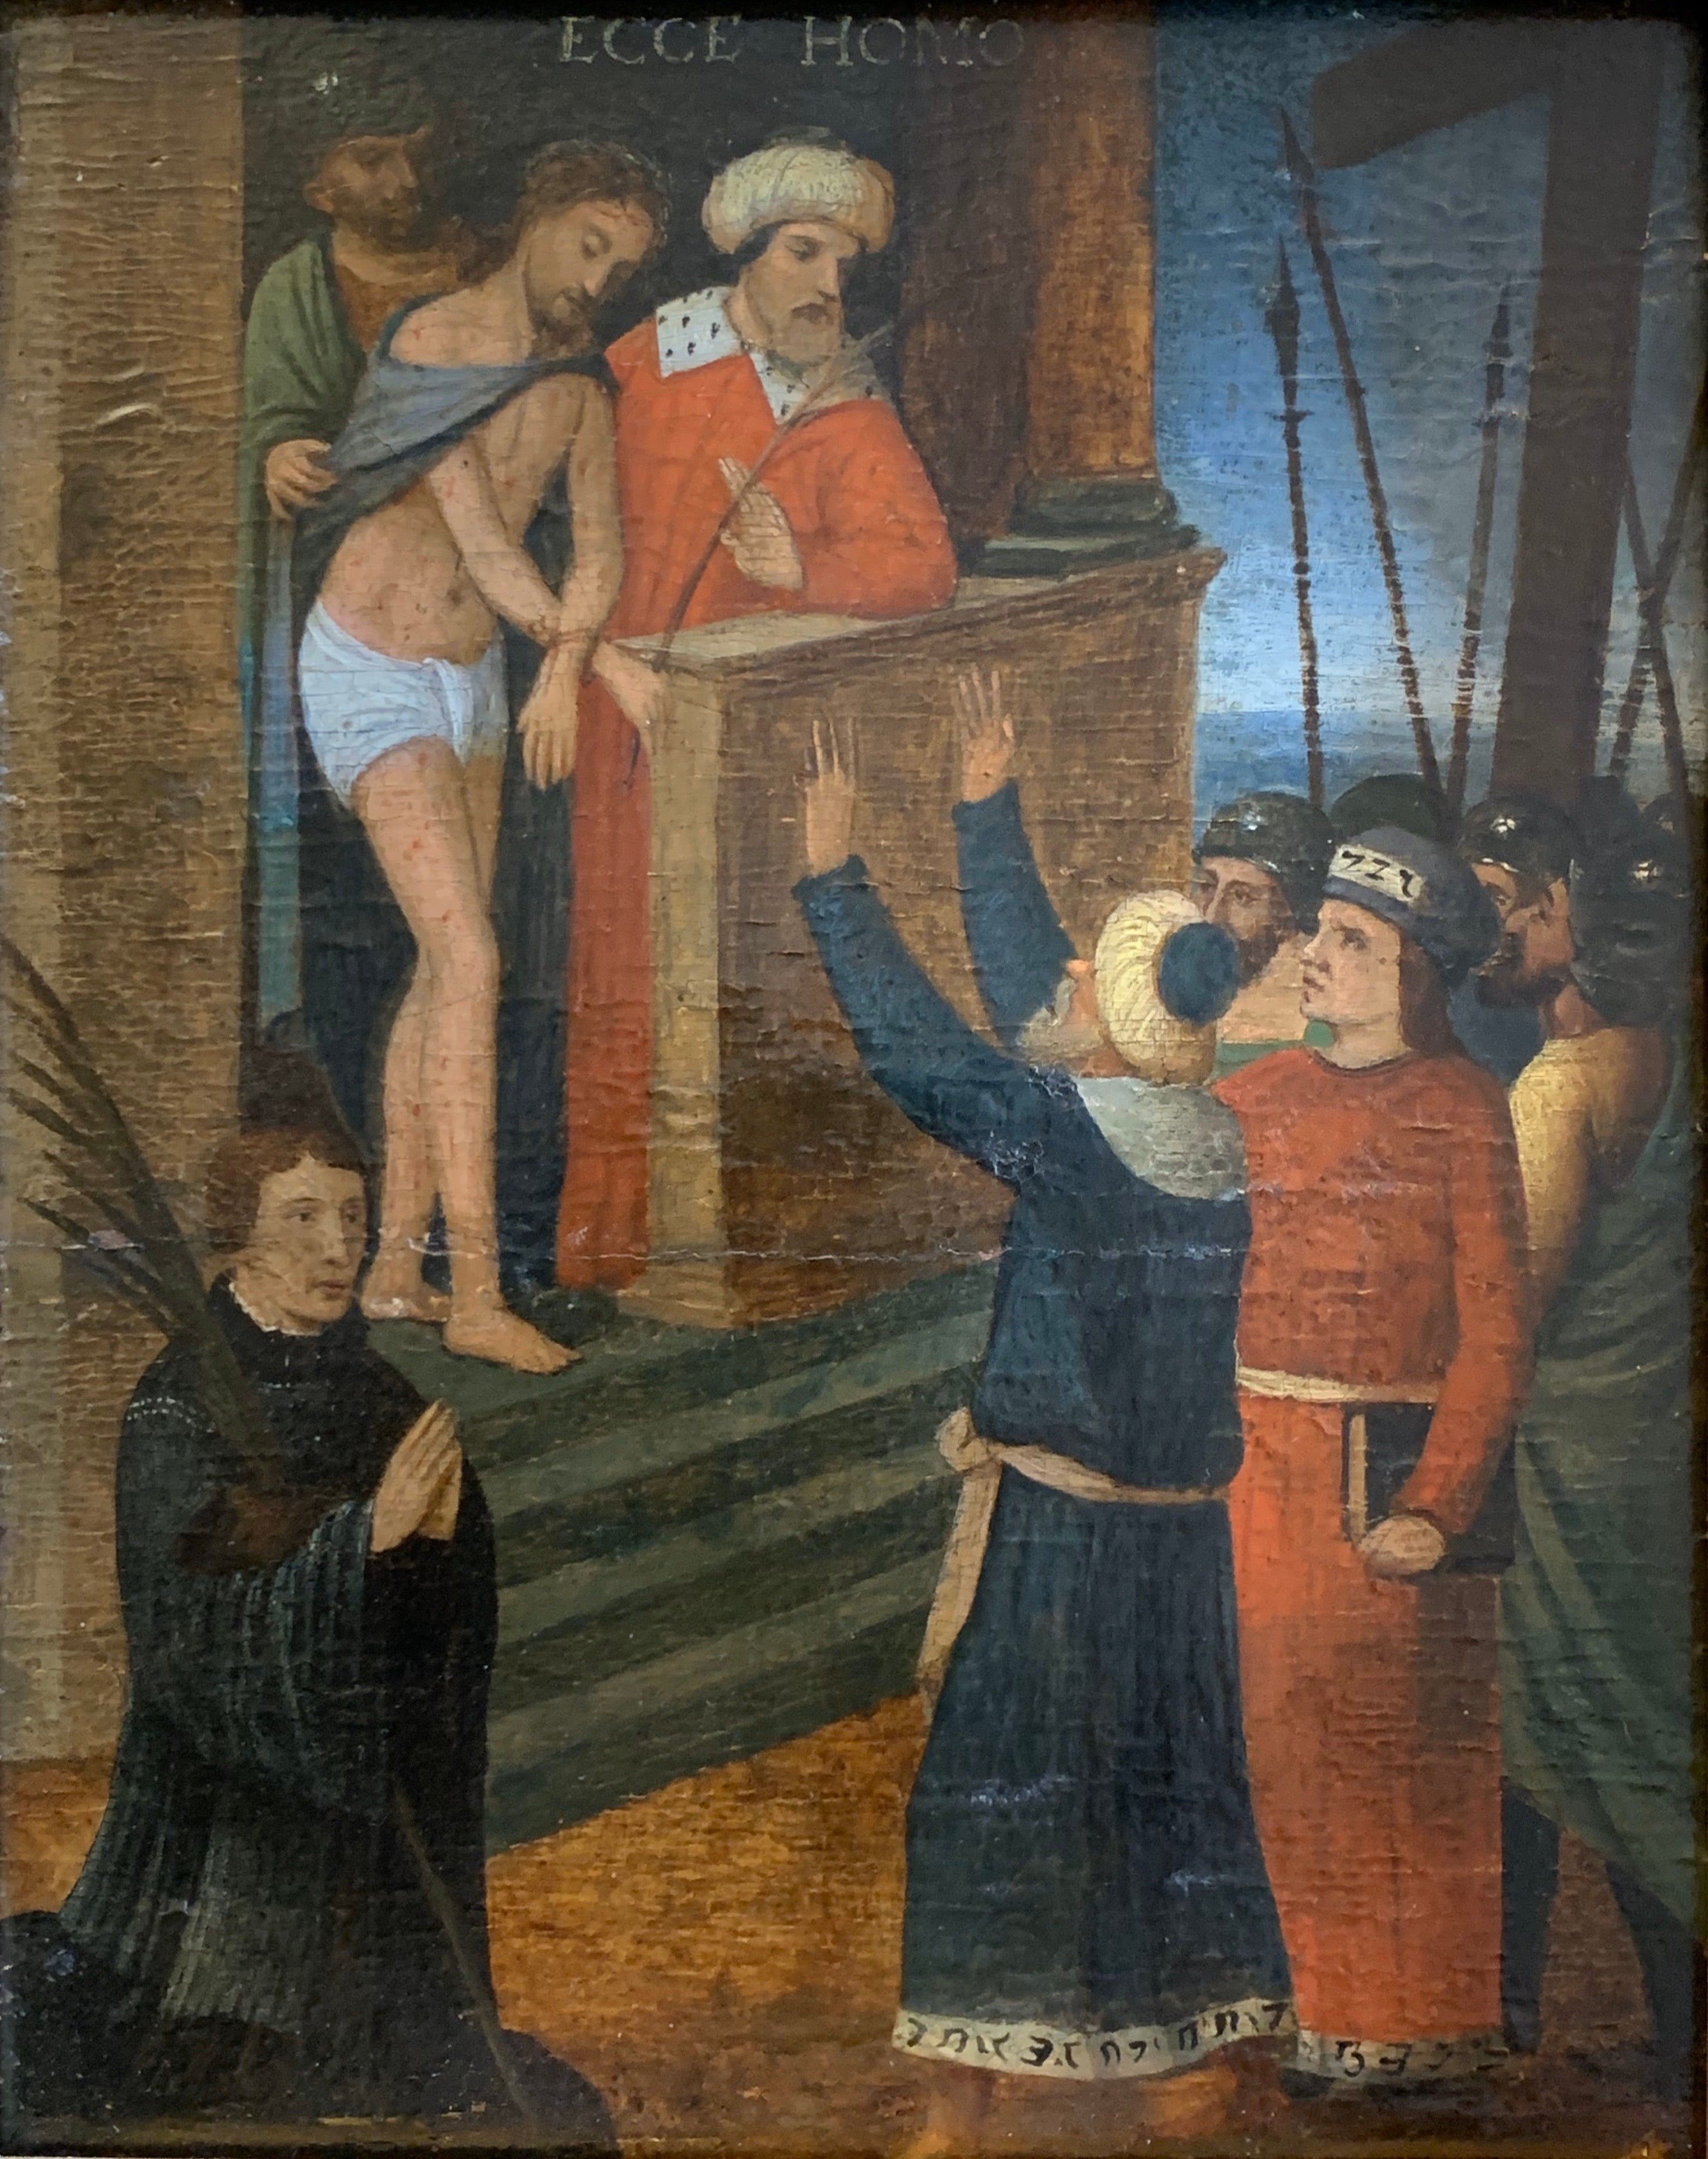 Ecce Homo 16th Century Dutch Old Master Oil Painting Wood Panel